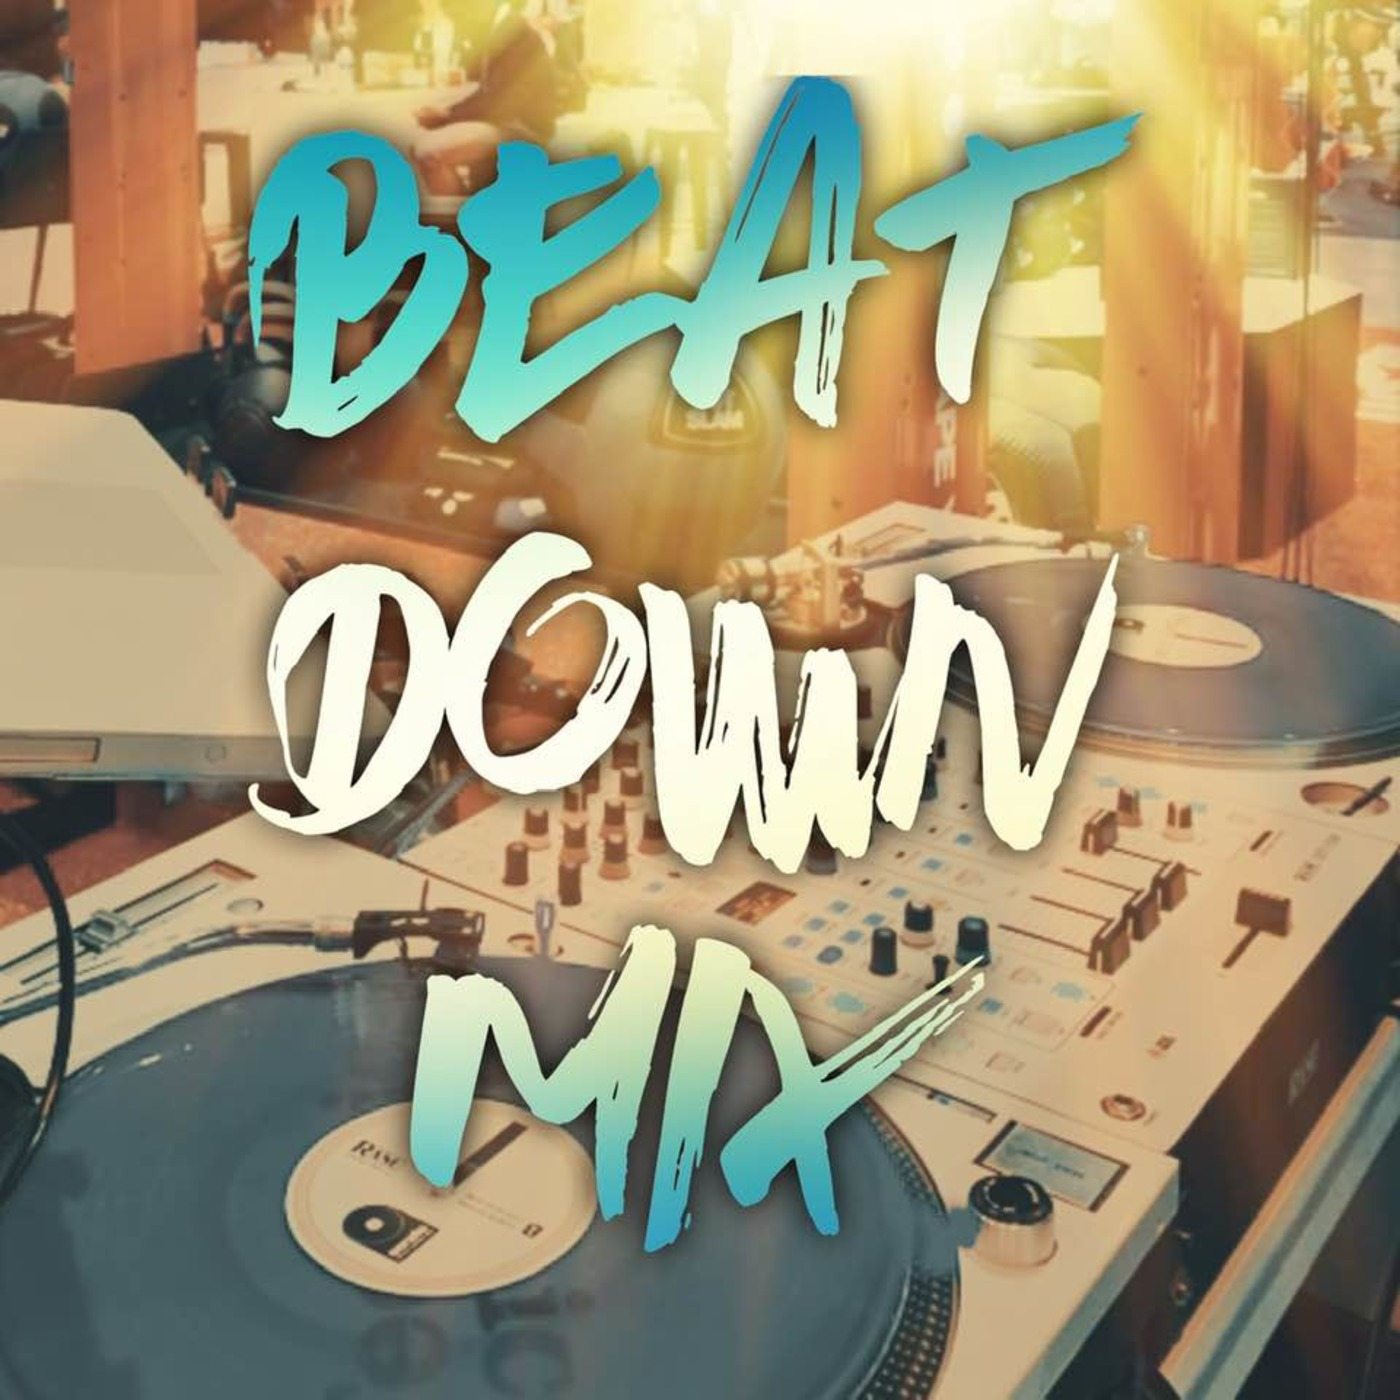 Beat Down Mix DJ LUX - Live In The Mix podcast